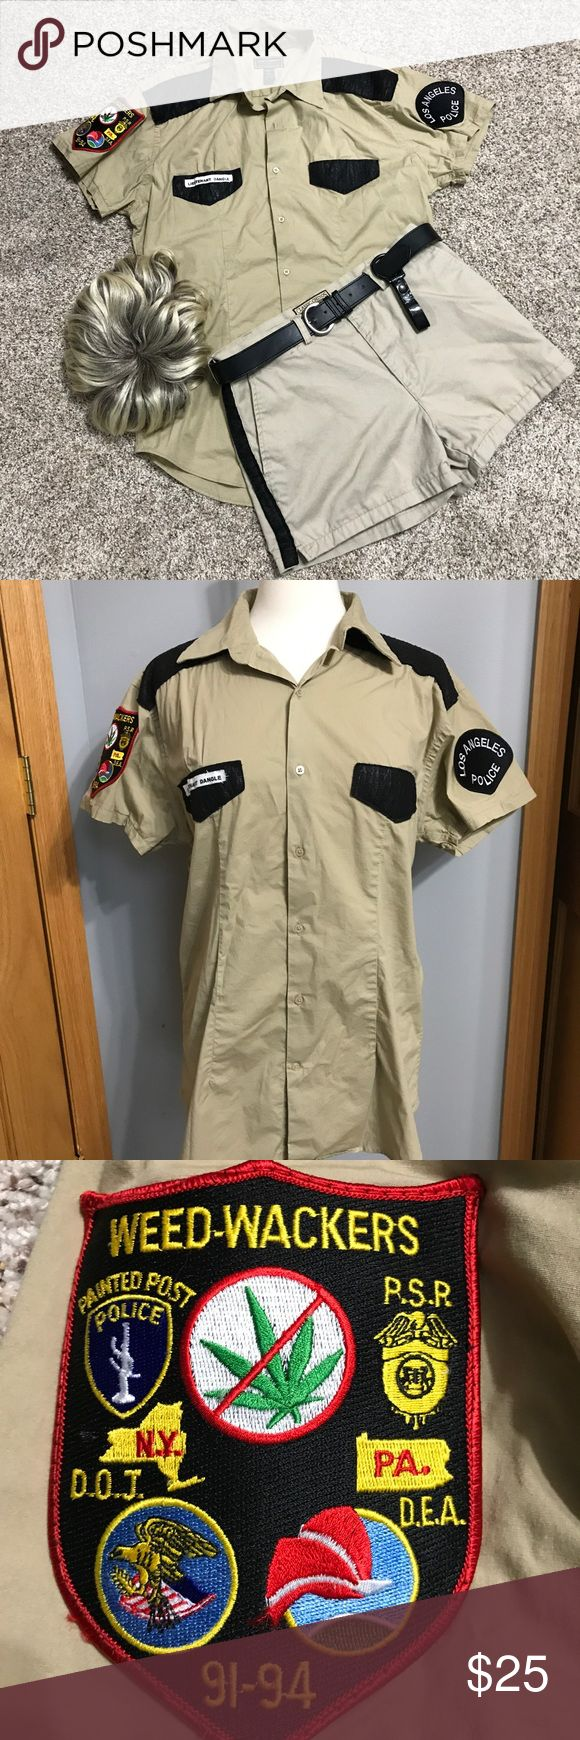 """Reno 911 Lt. Dangle Costume Large stretch Tan Shirt with added embellishments, size 32 waist chino shorts with stripes at sides and belt, inseam 3"""". Wig included. Go to your fav Halloween shop and pick up aviators, a badge and maybe a fake gun and flashlight. Then you are set! Other"""